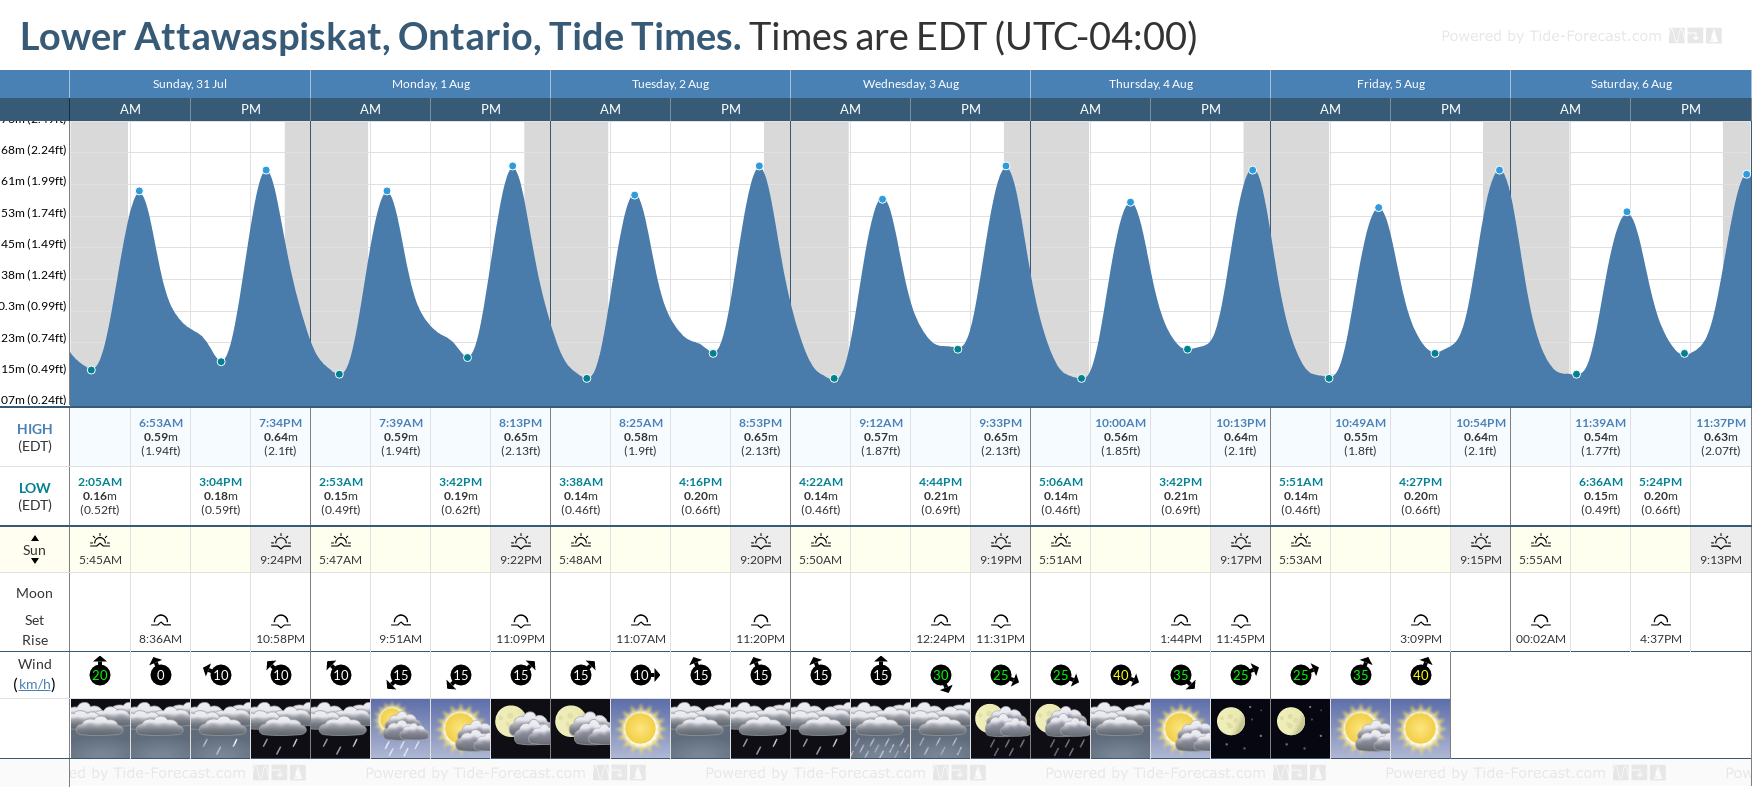 Lower Attawaspiskat, Ontario Tide Chart including high and low tide tide times for the next 7 days